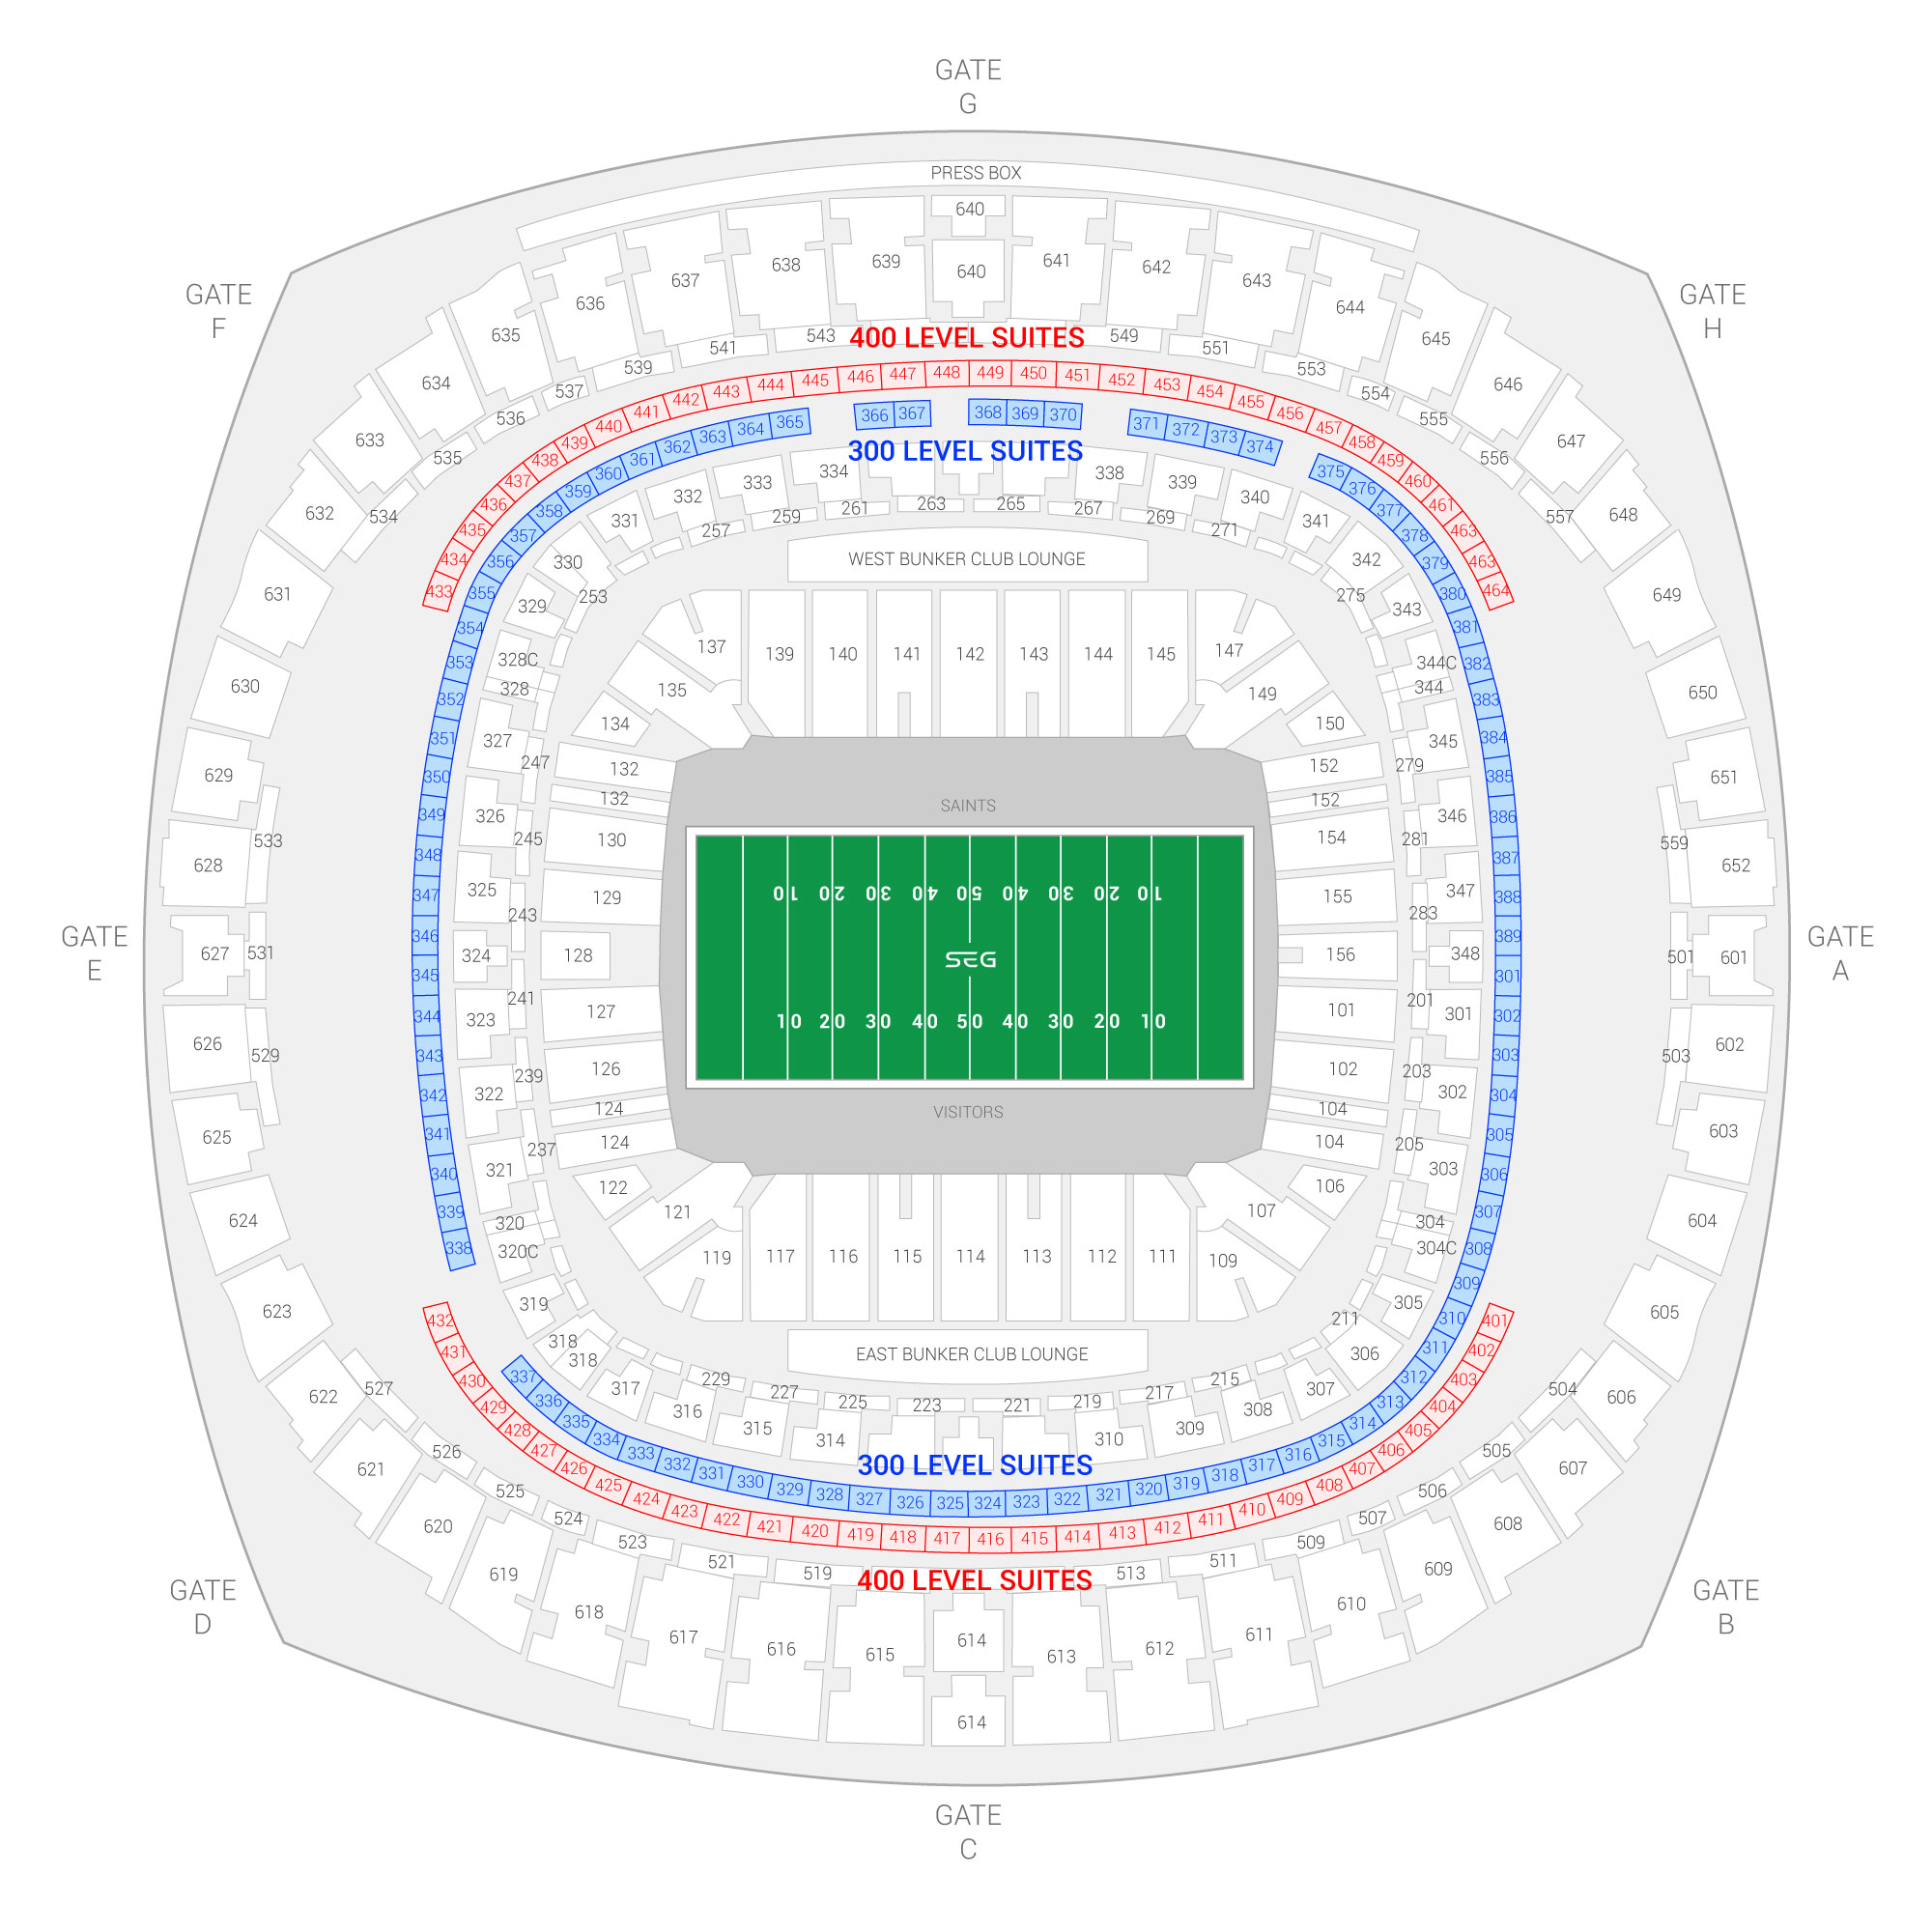 Caesars Superdome (Formerly Mercedes-Benz Superdome) / Allstate Sugar Bowl Suite Map and Seating Chart